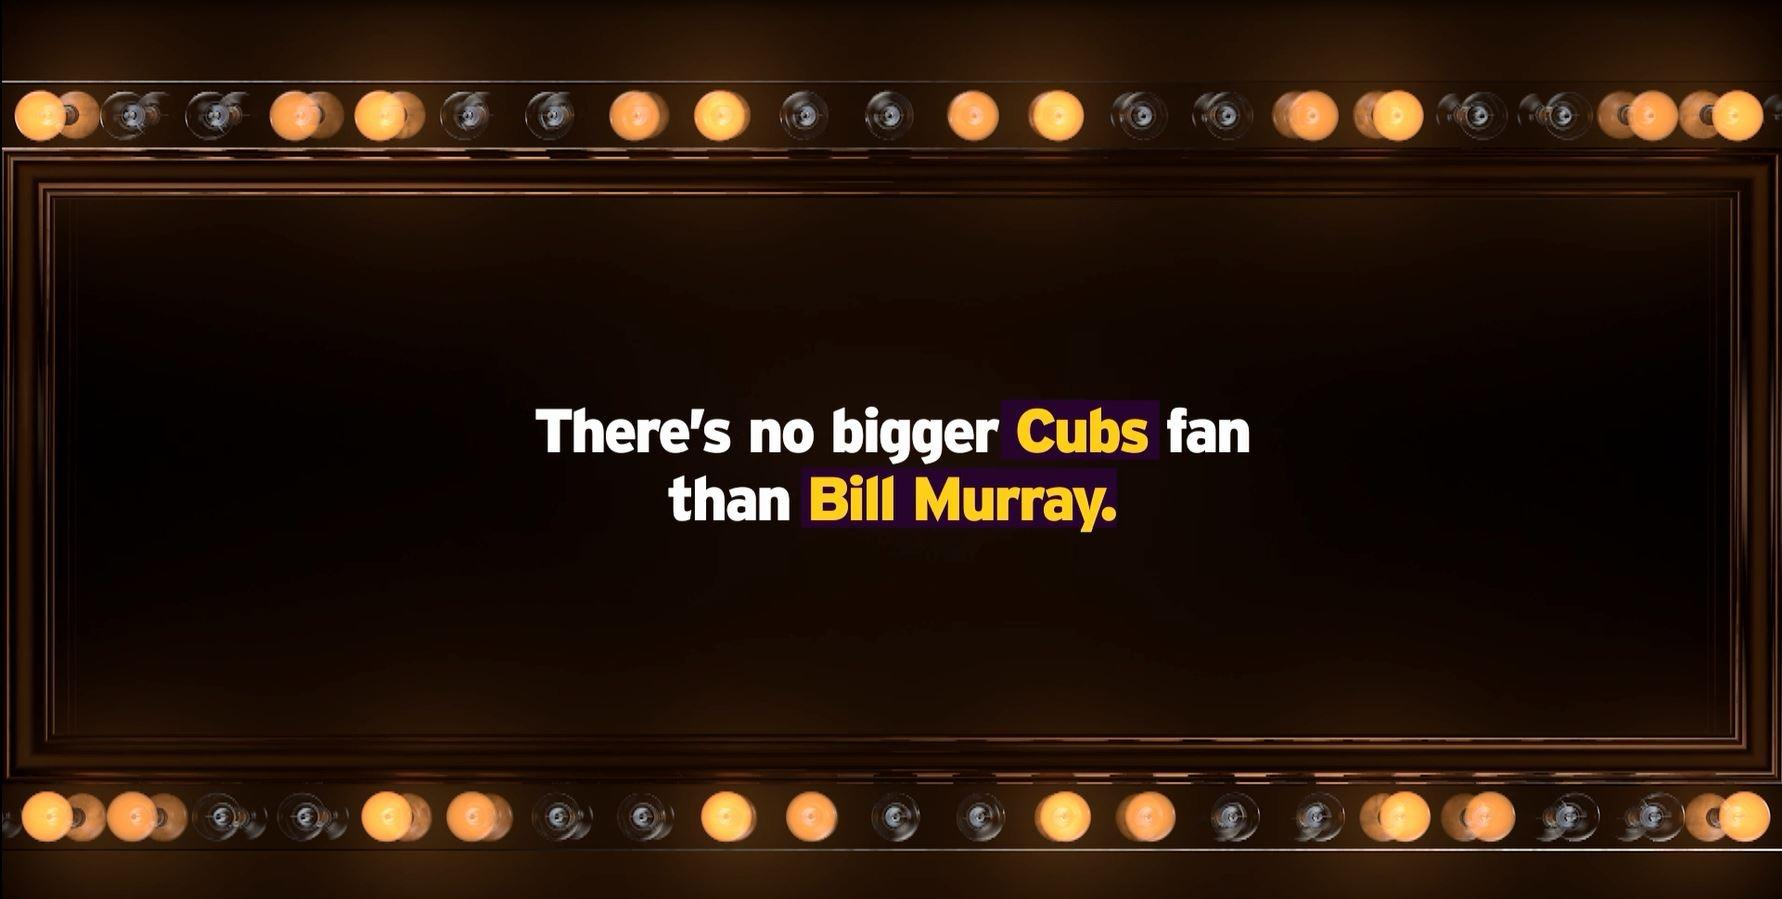 There's No Bigger Cubs Fan than Bill Murray